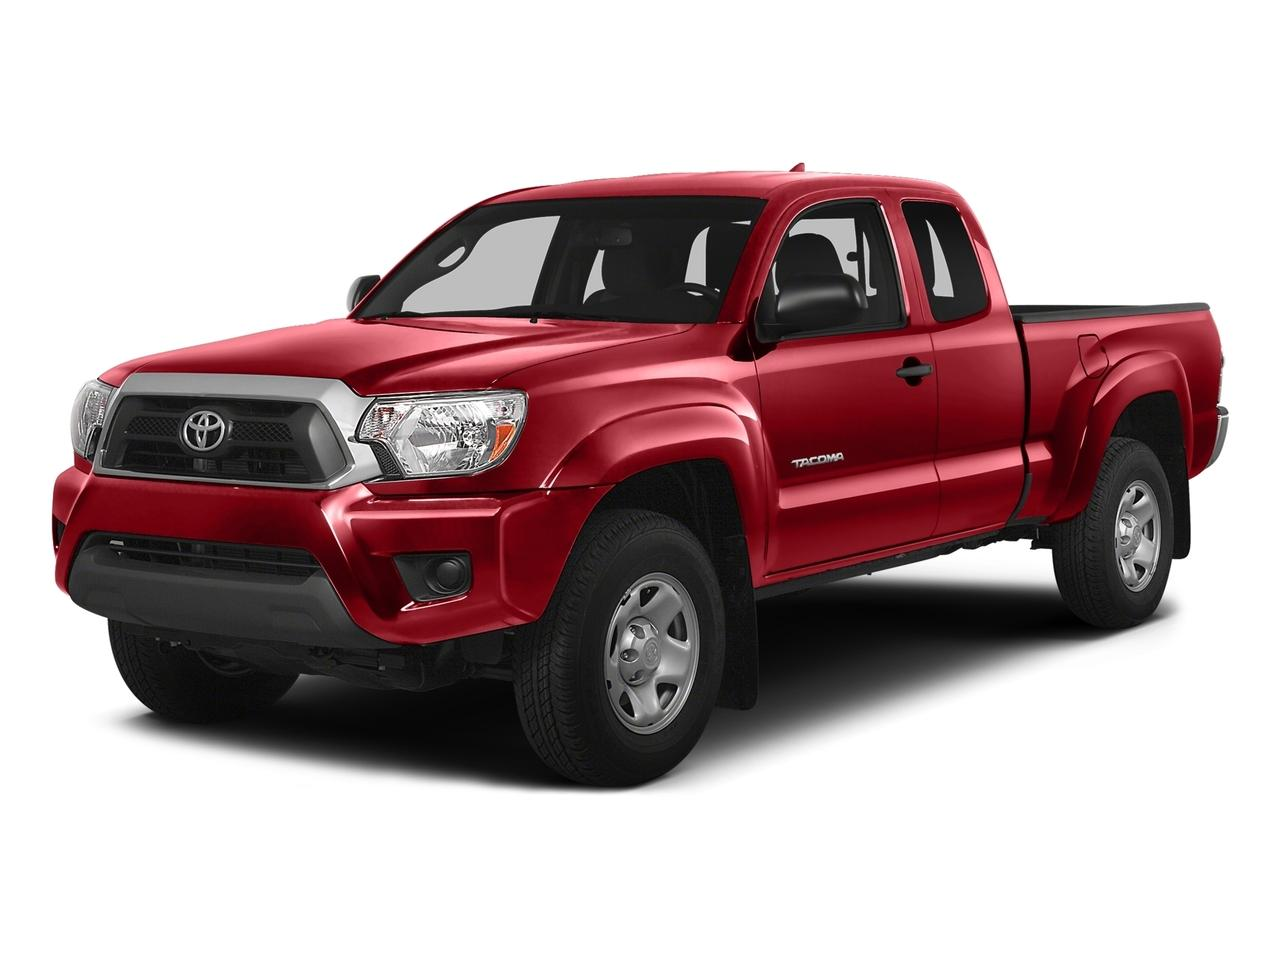 2015 Toyota Tacoma Vehicle Photo in Danbury, CT 06810